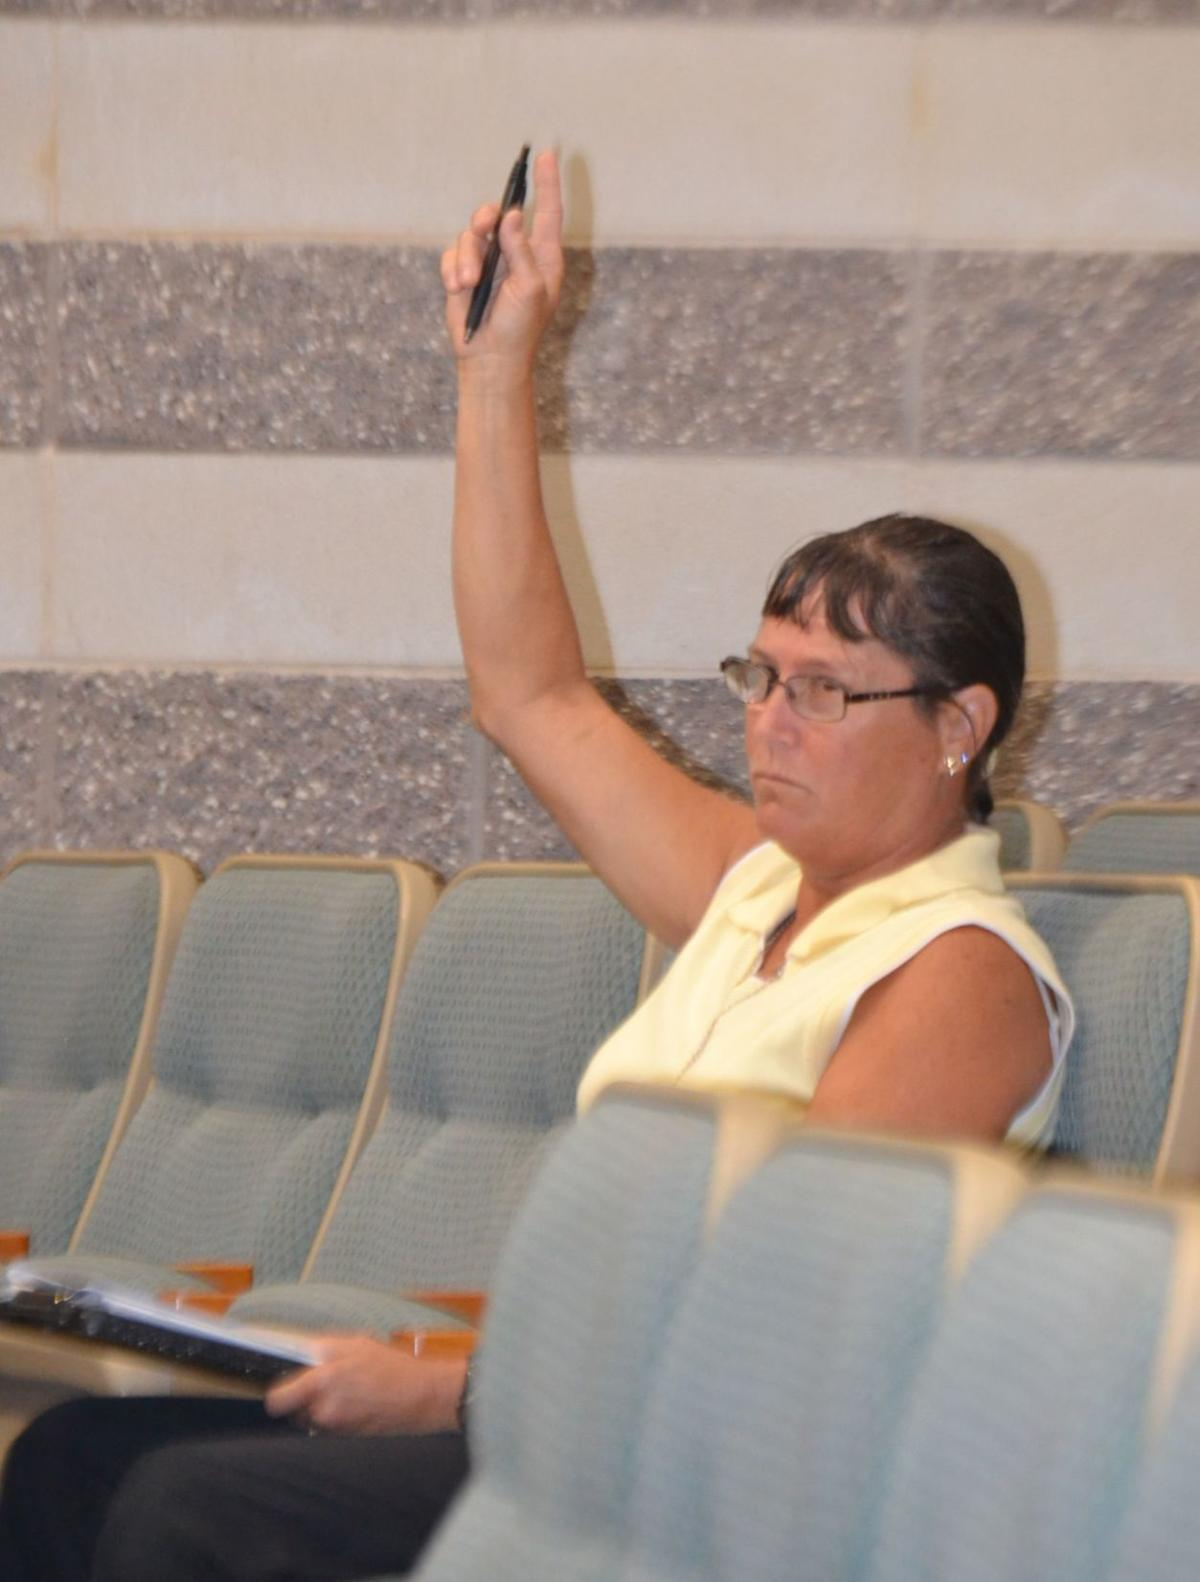 Beth Degnan at the April 16 County Commission meeting